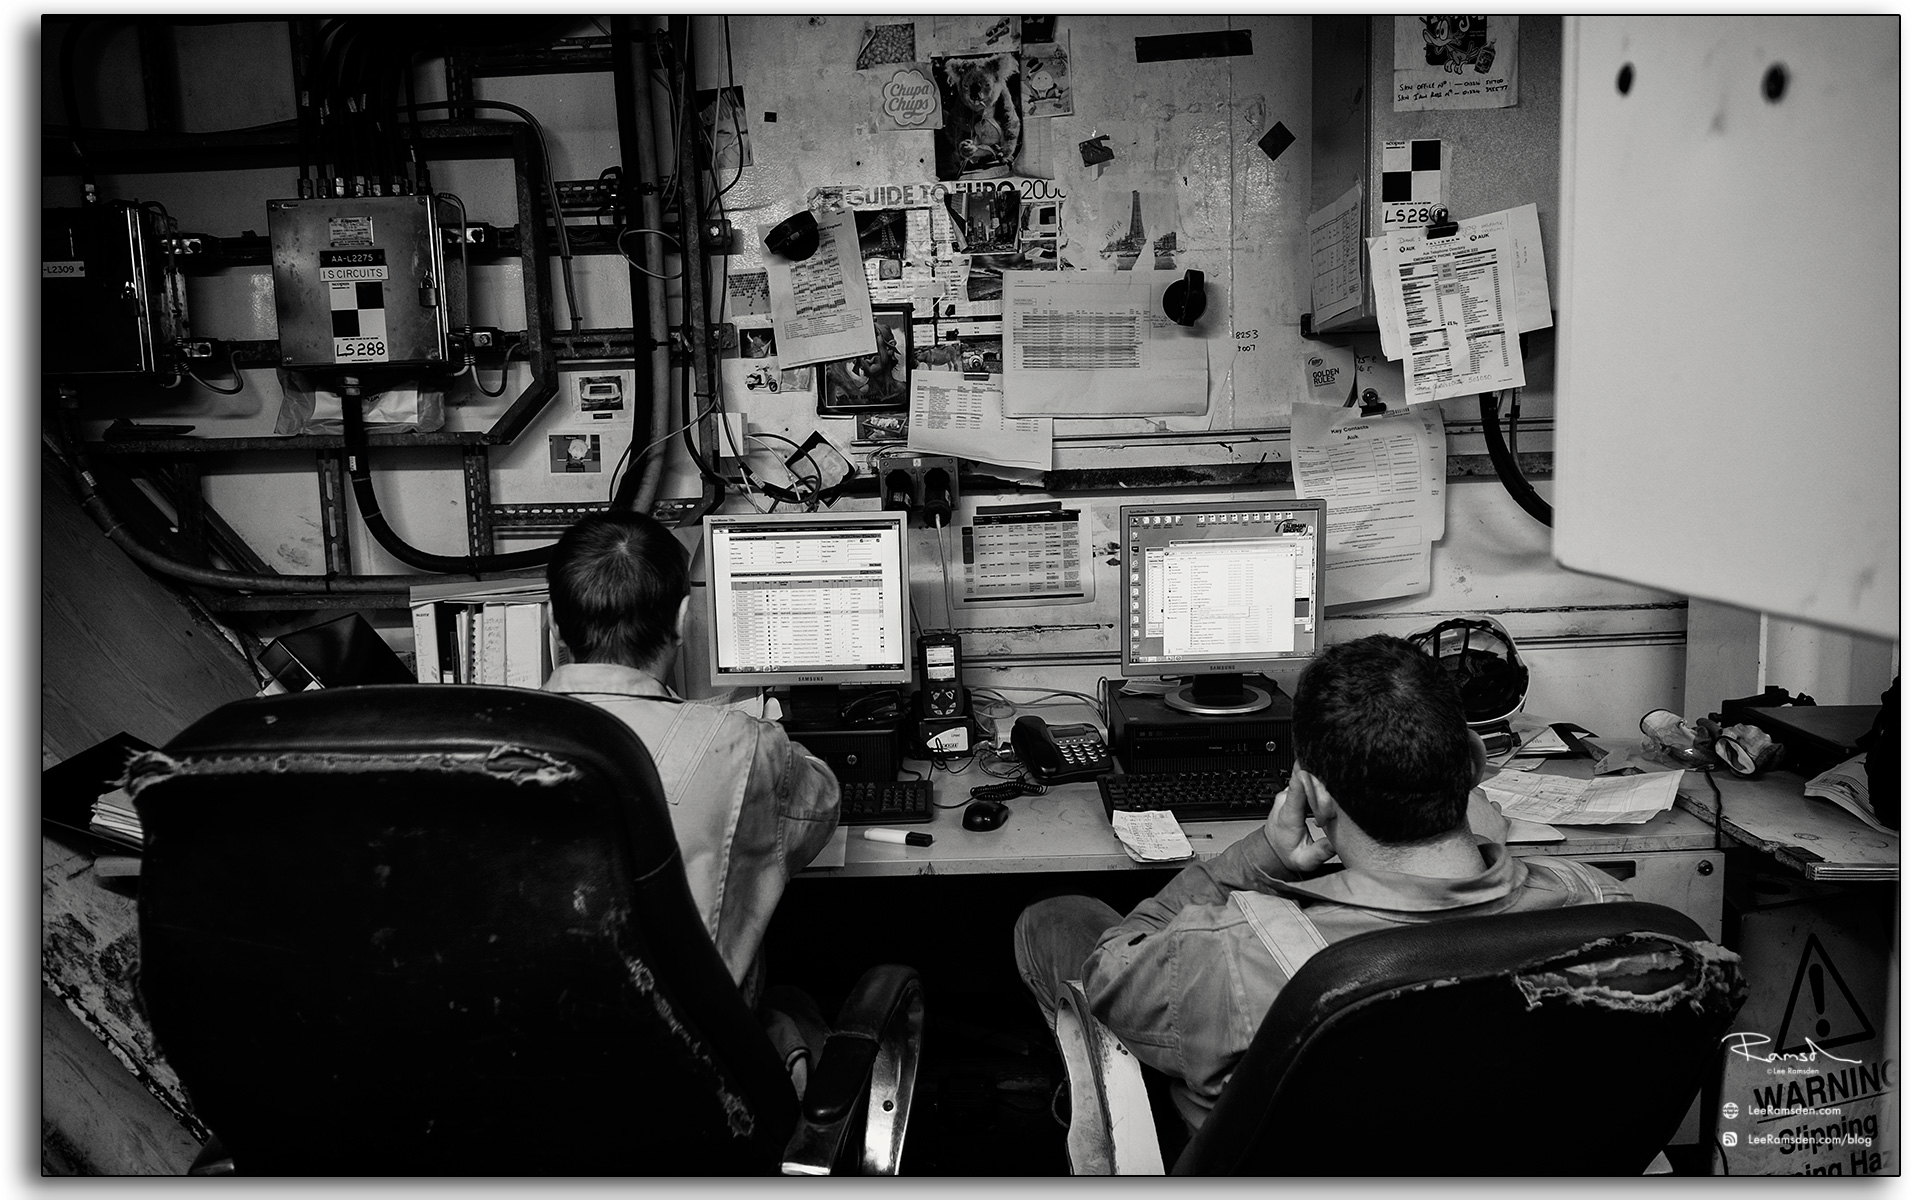 19 offshore north sea oil and gas workers working hard at the computer in the office